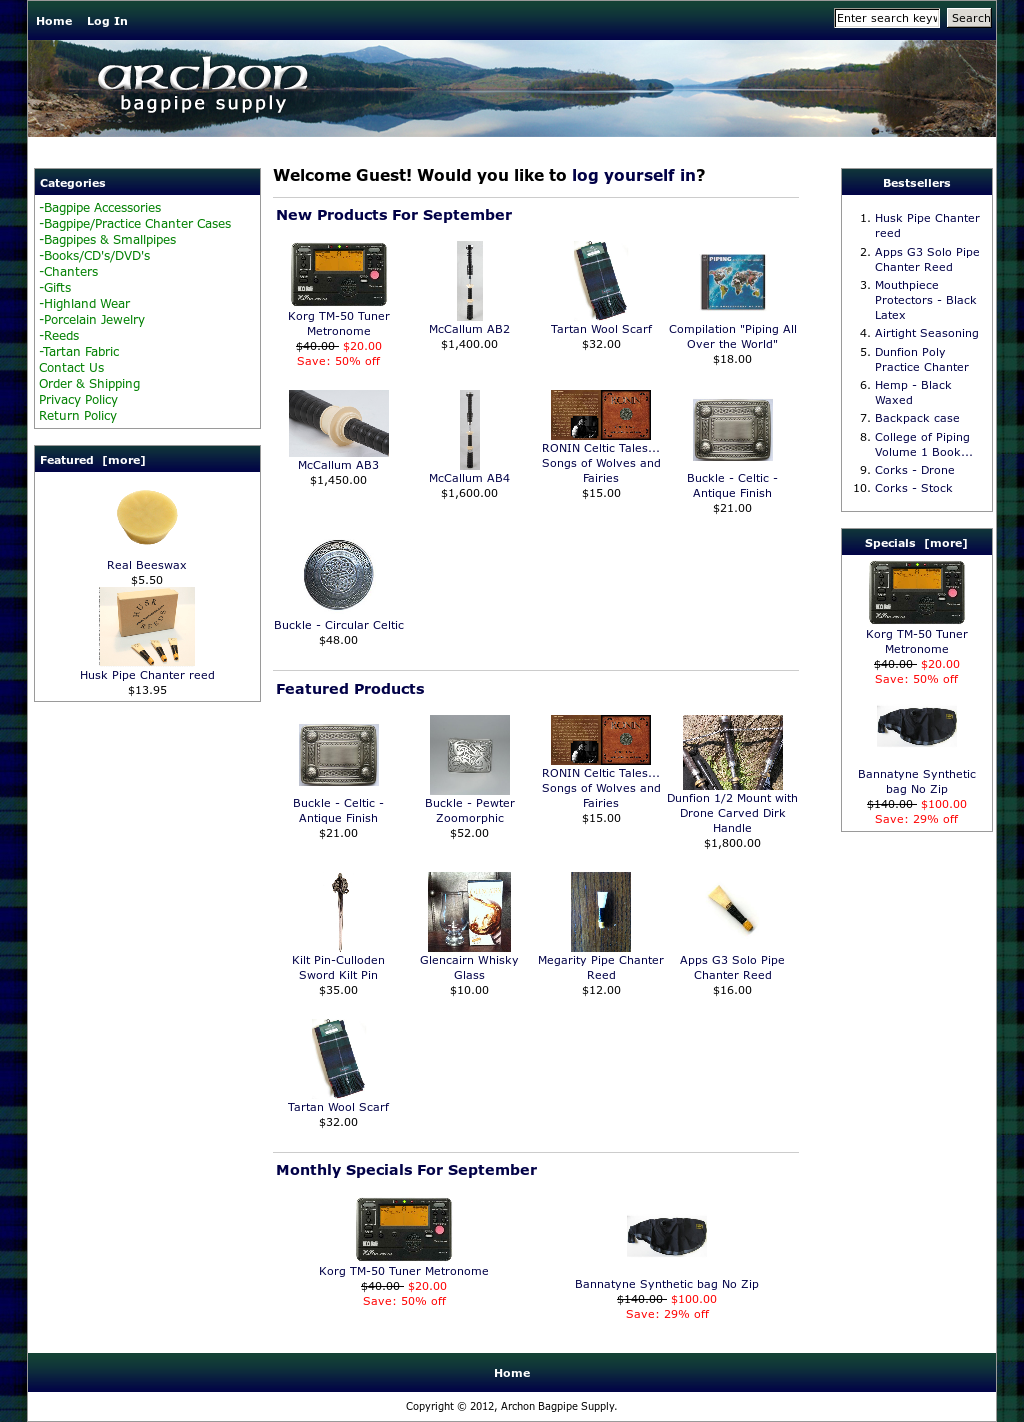 Archon Bagpipe Supply Competitors, Revenue and Employees - Owler